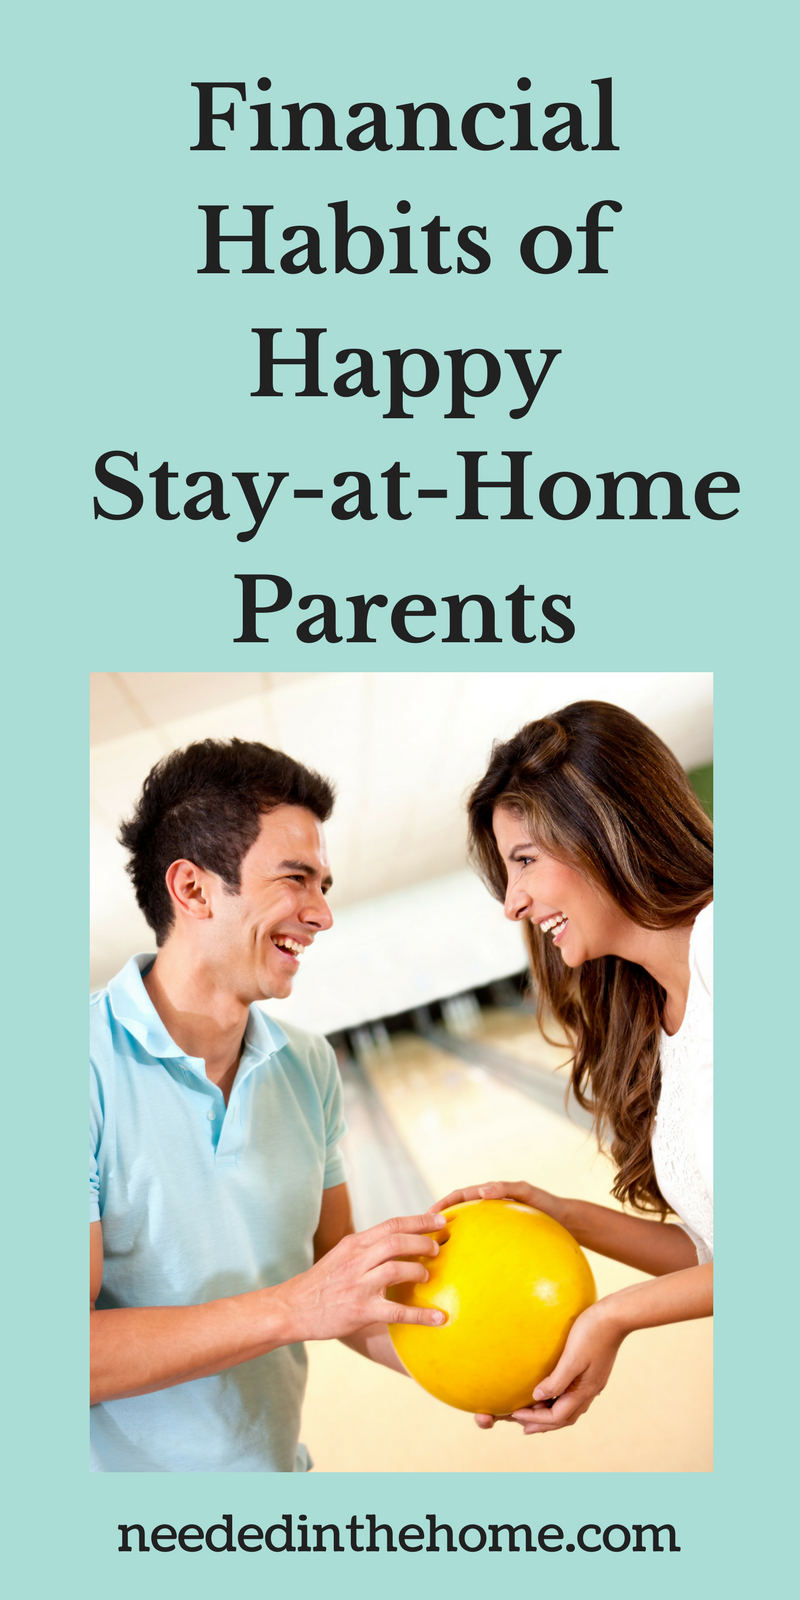 man and woman bowling on date night Financial Habits of Happy Stay-at-Home Parents neededinthehome.com